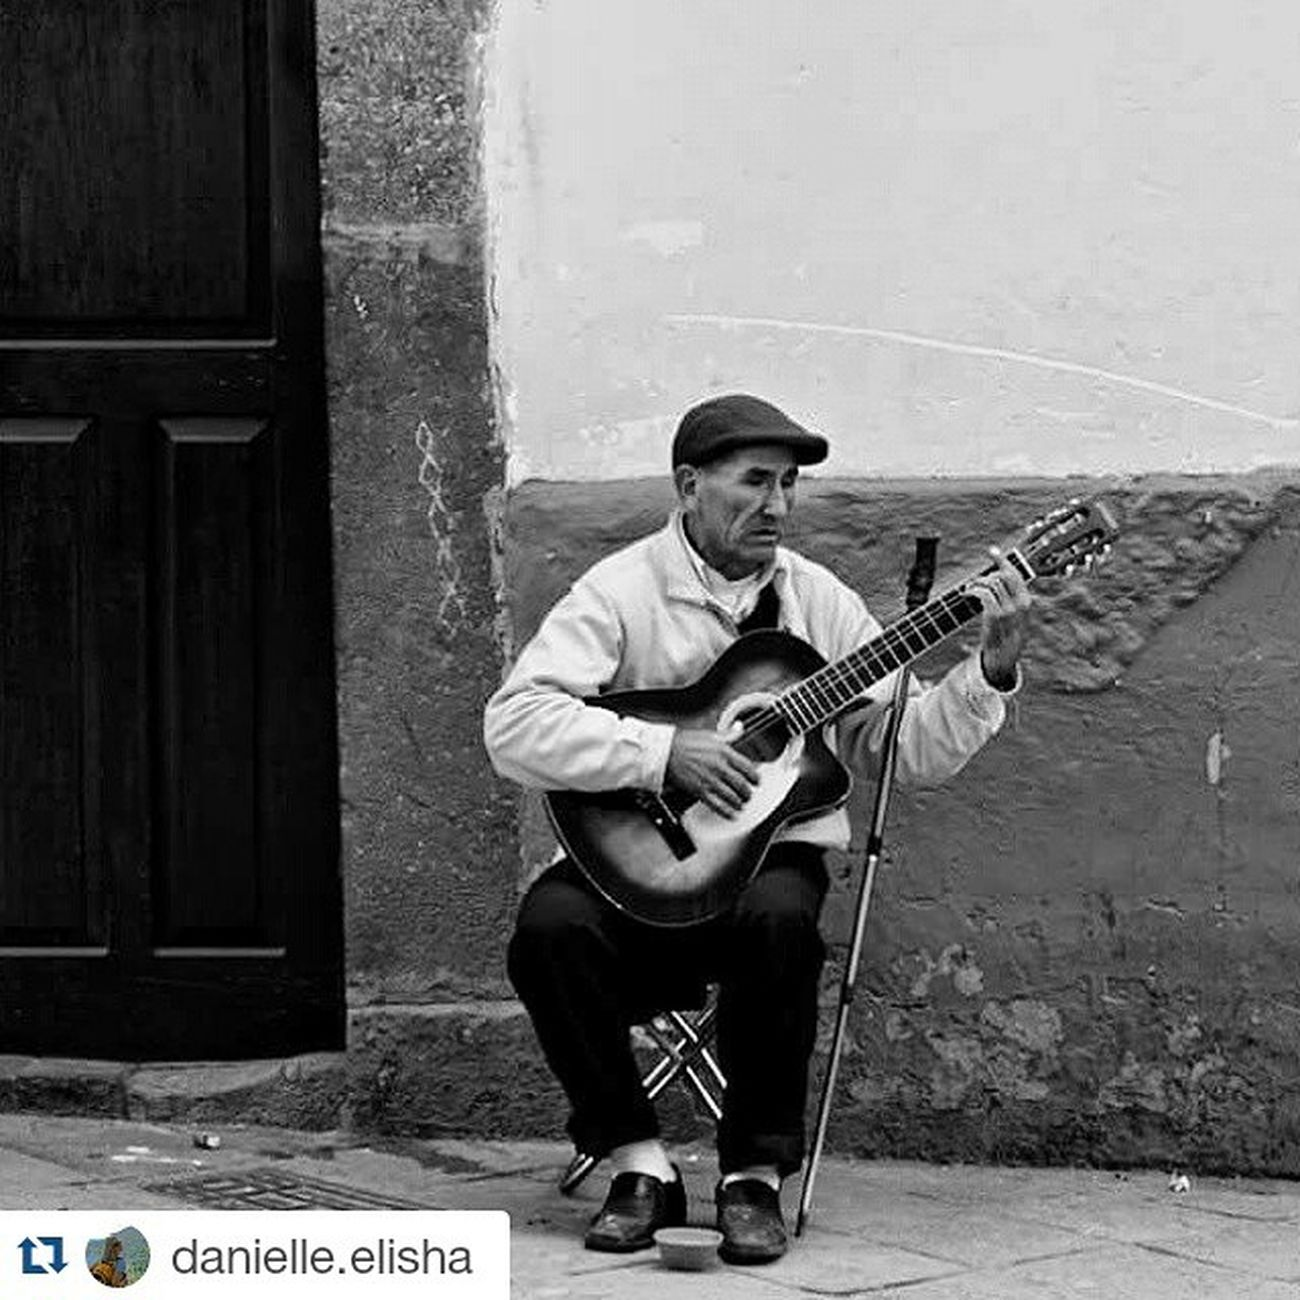 Repost @danielle.elisha ・・・ He is blind, yet his music helps him see and feel what his eyes cannot. His music is simple, full of passion and love. A simple man, a simple song. Photography Candid Travel Culture Cusco Candid Explore Peru Blind Sing Adventure Canon Andesmountains Natgeo Goeverywhere Liveeverything Seetheworld  GoDo Bekind Music Thephotosociety Tourtheplanet